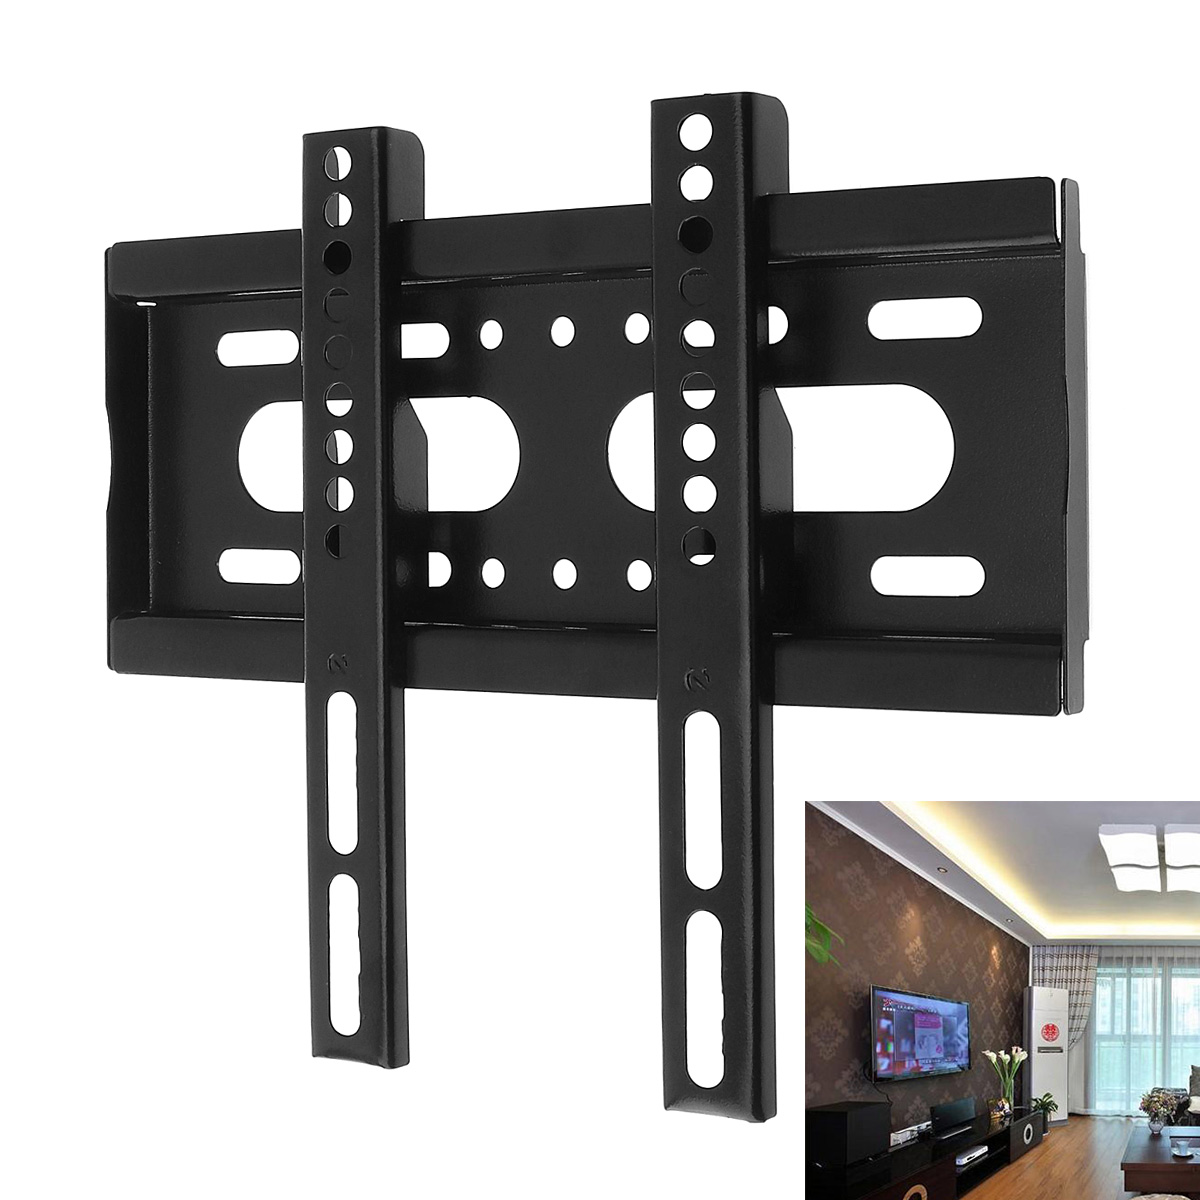 Universal 25KG TV Wall Mount Bracket Fixed Flat Panel Plasma TV Frame Stand for 14-42 Inch LCD LED Monitor Holder